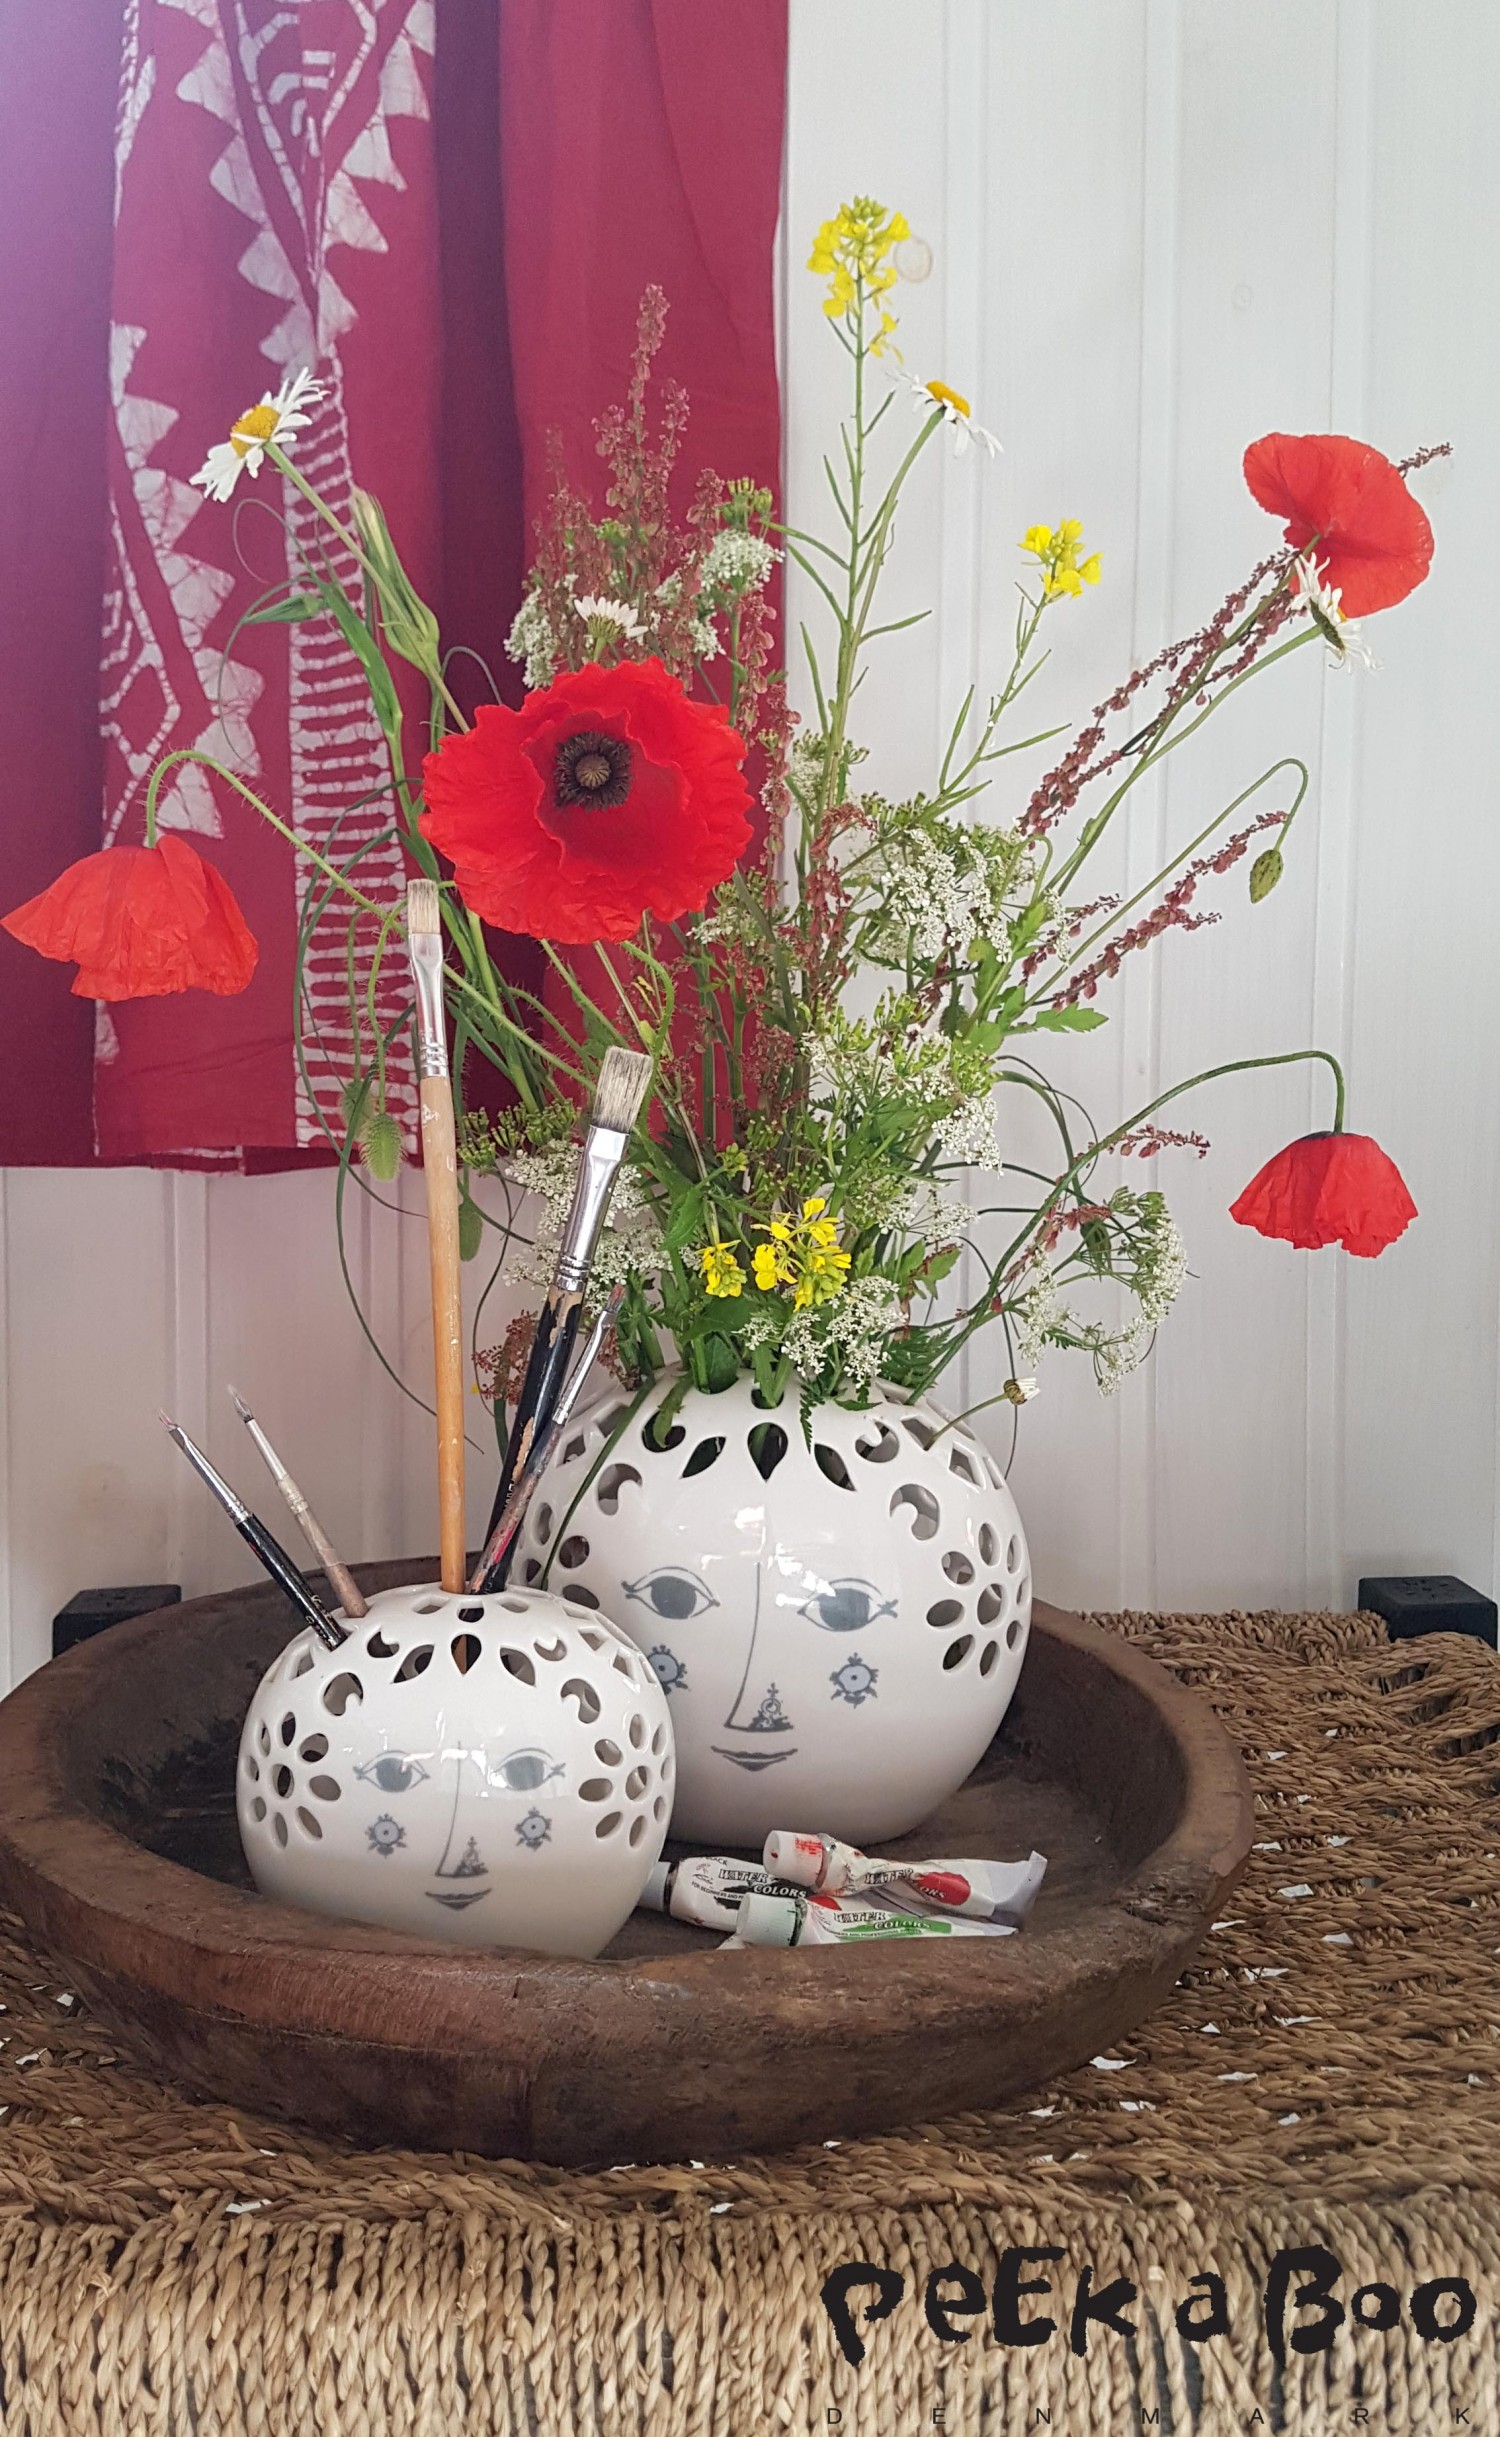 The vases can also be used for other things like your brushes for painting or makeup...that looks really cute.